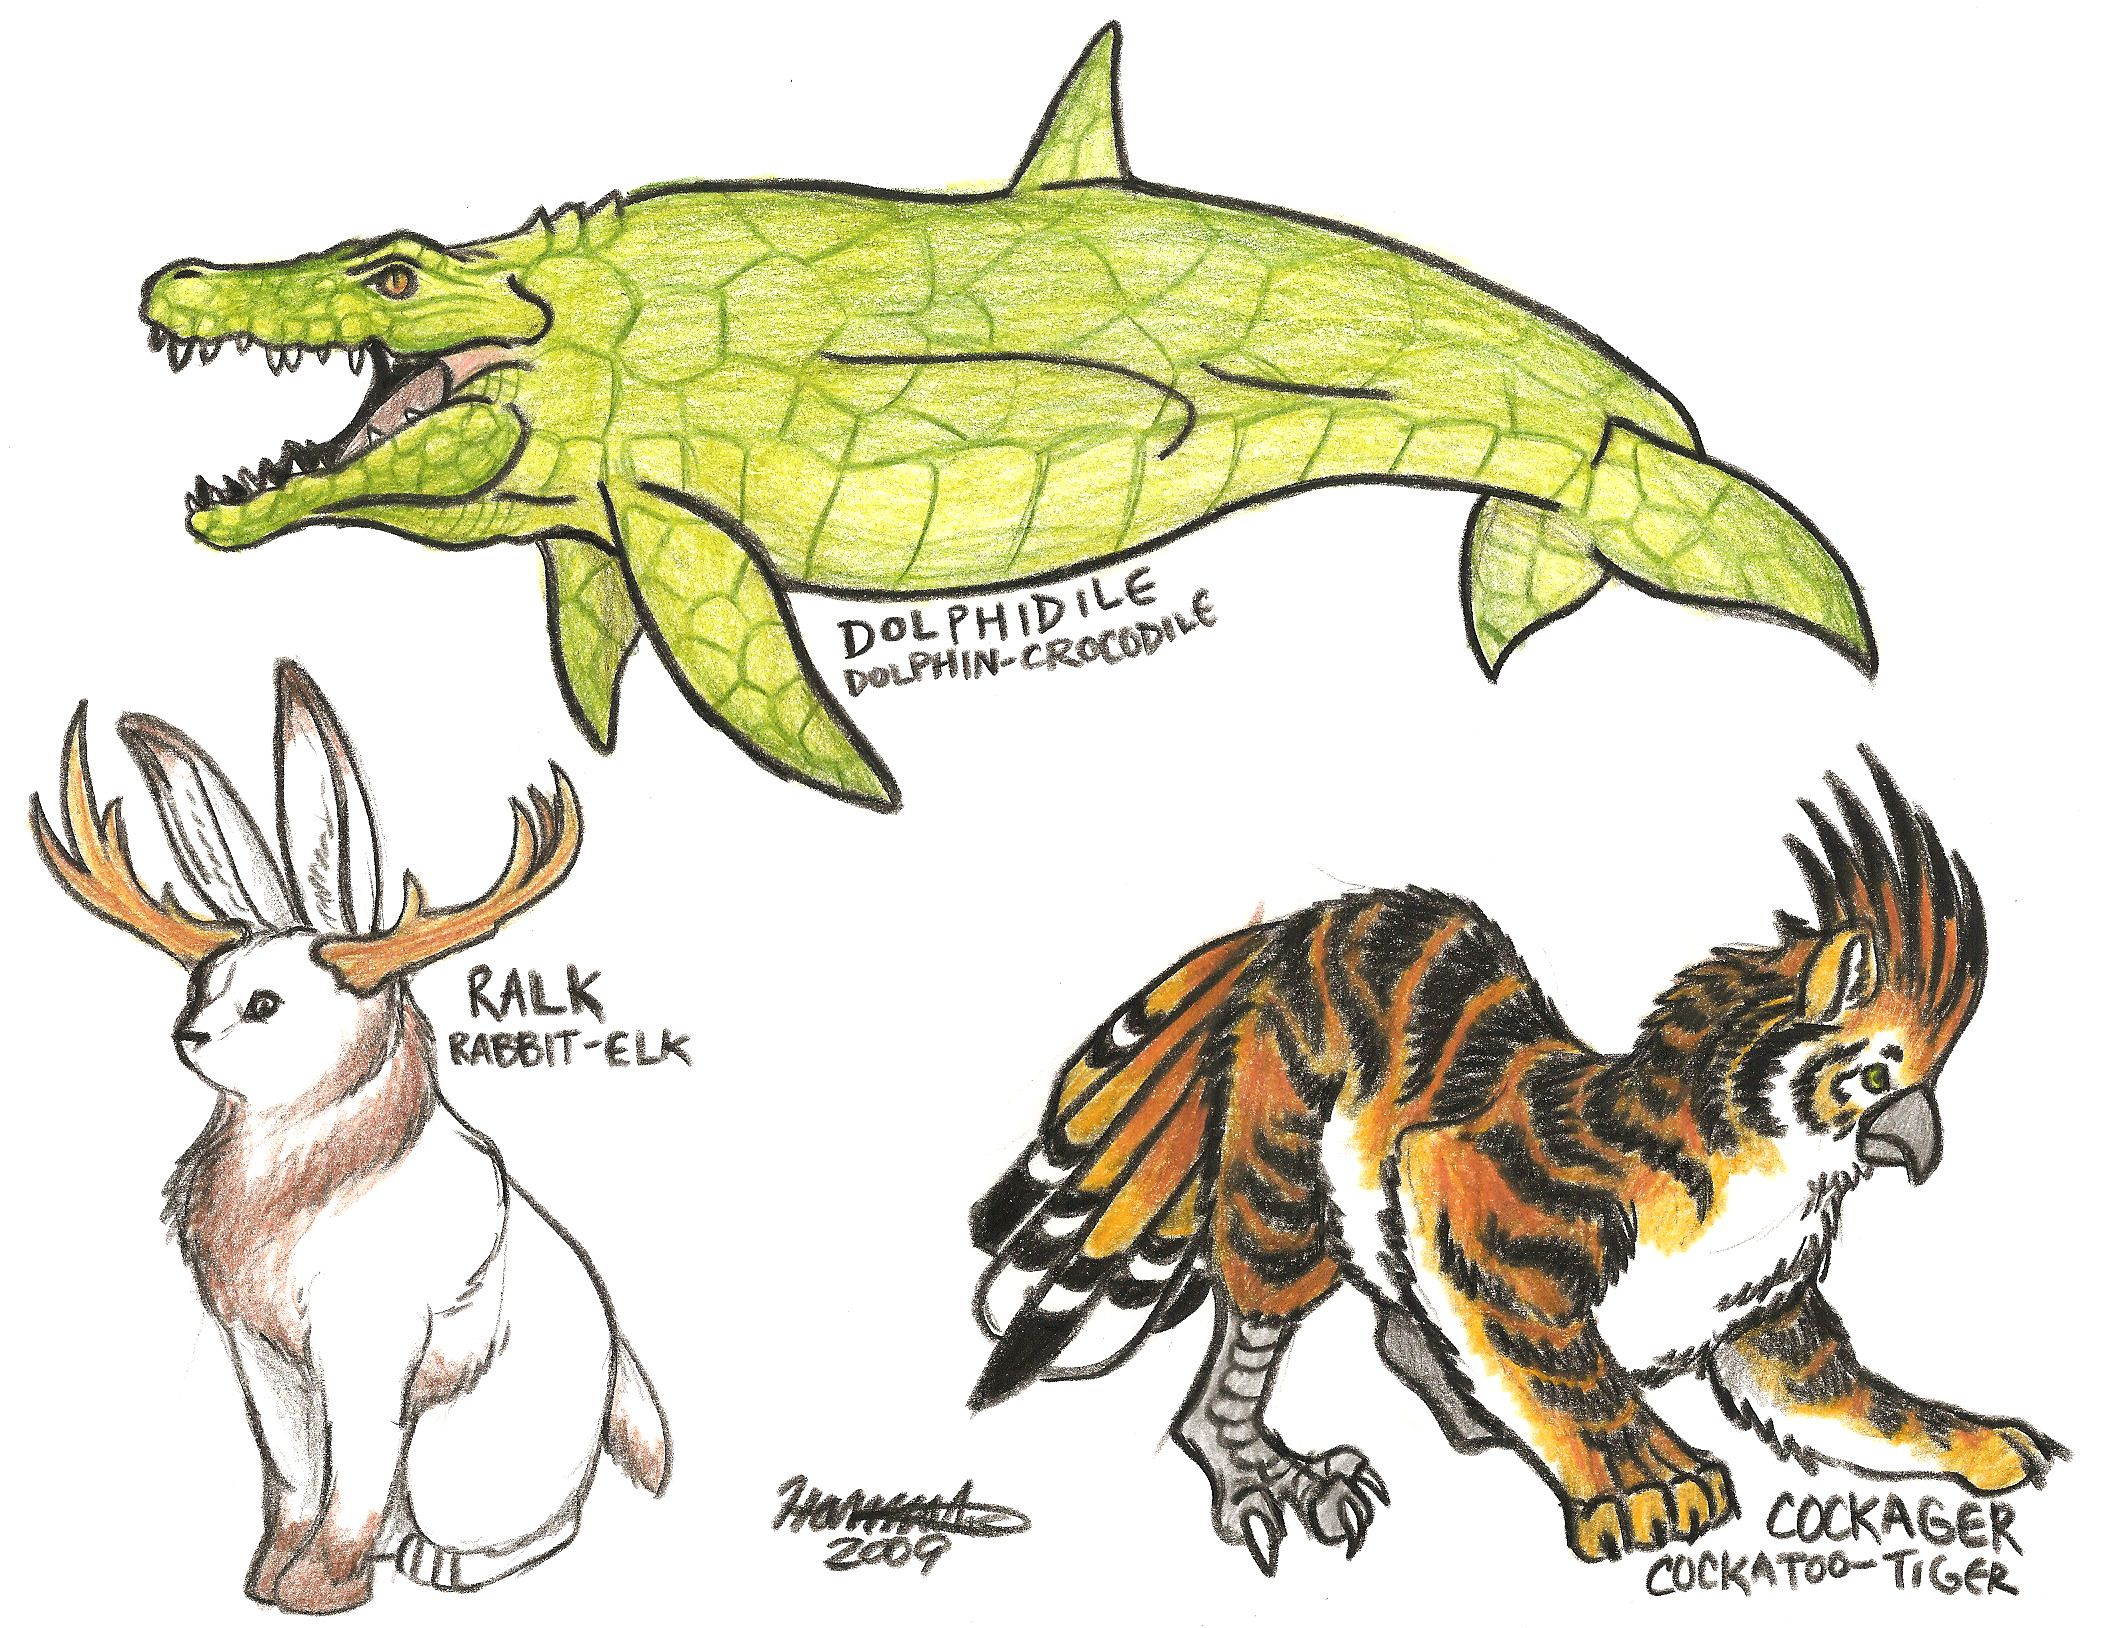 Animal Hybrids By Orcacat88 Deviantart Dolphidile Dolphin Crocodile Ralk Rabbit Elk Cockager Cockat Hybrid Art Creature Concept Art Animal Drawings